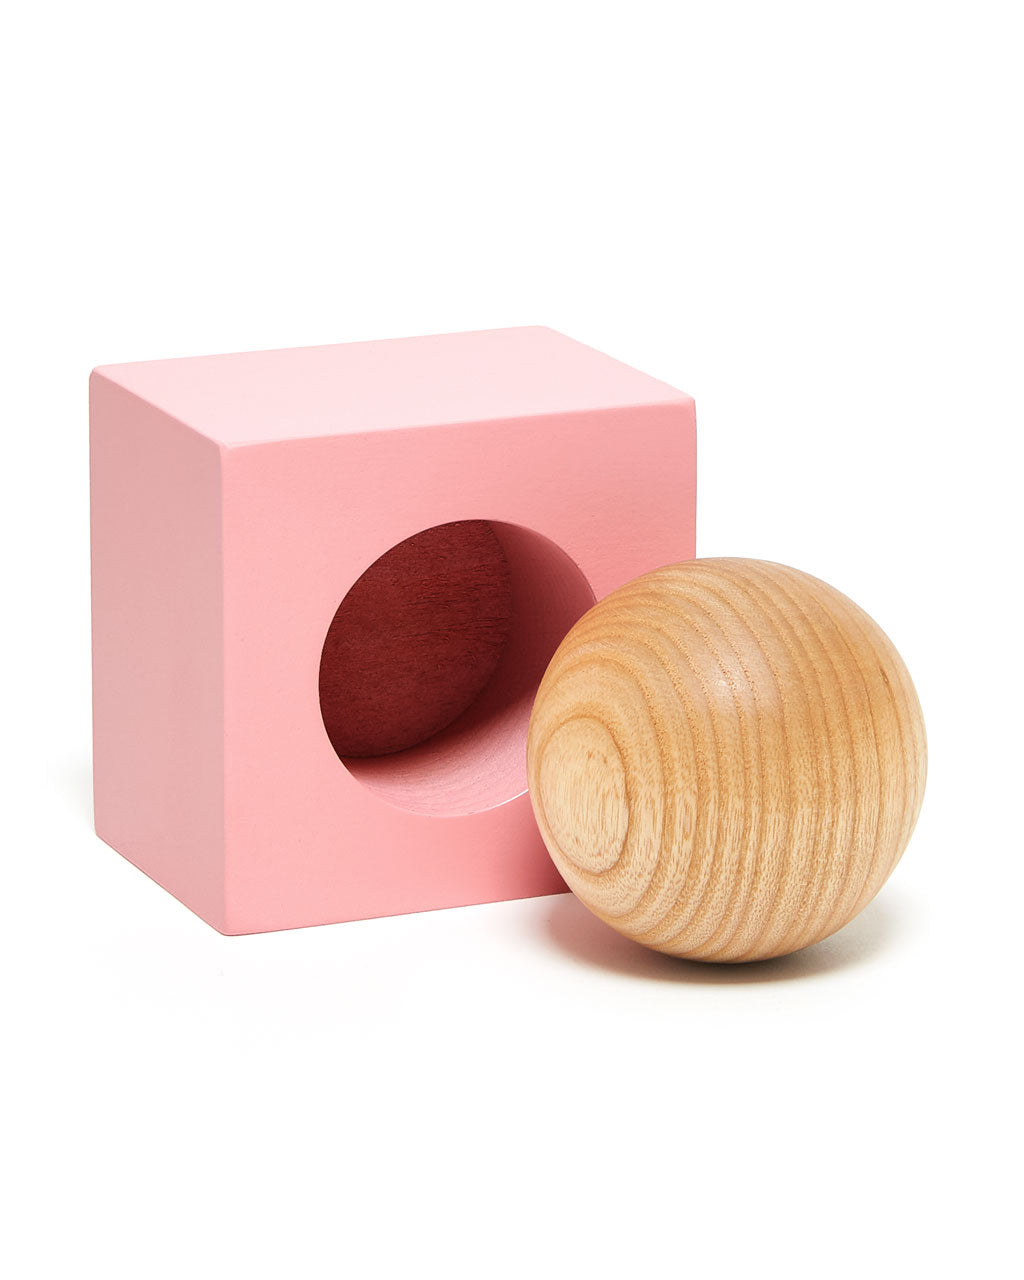 mini container - ban.do pink